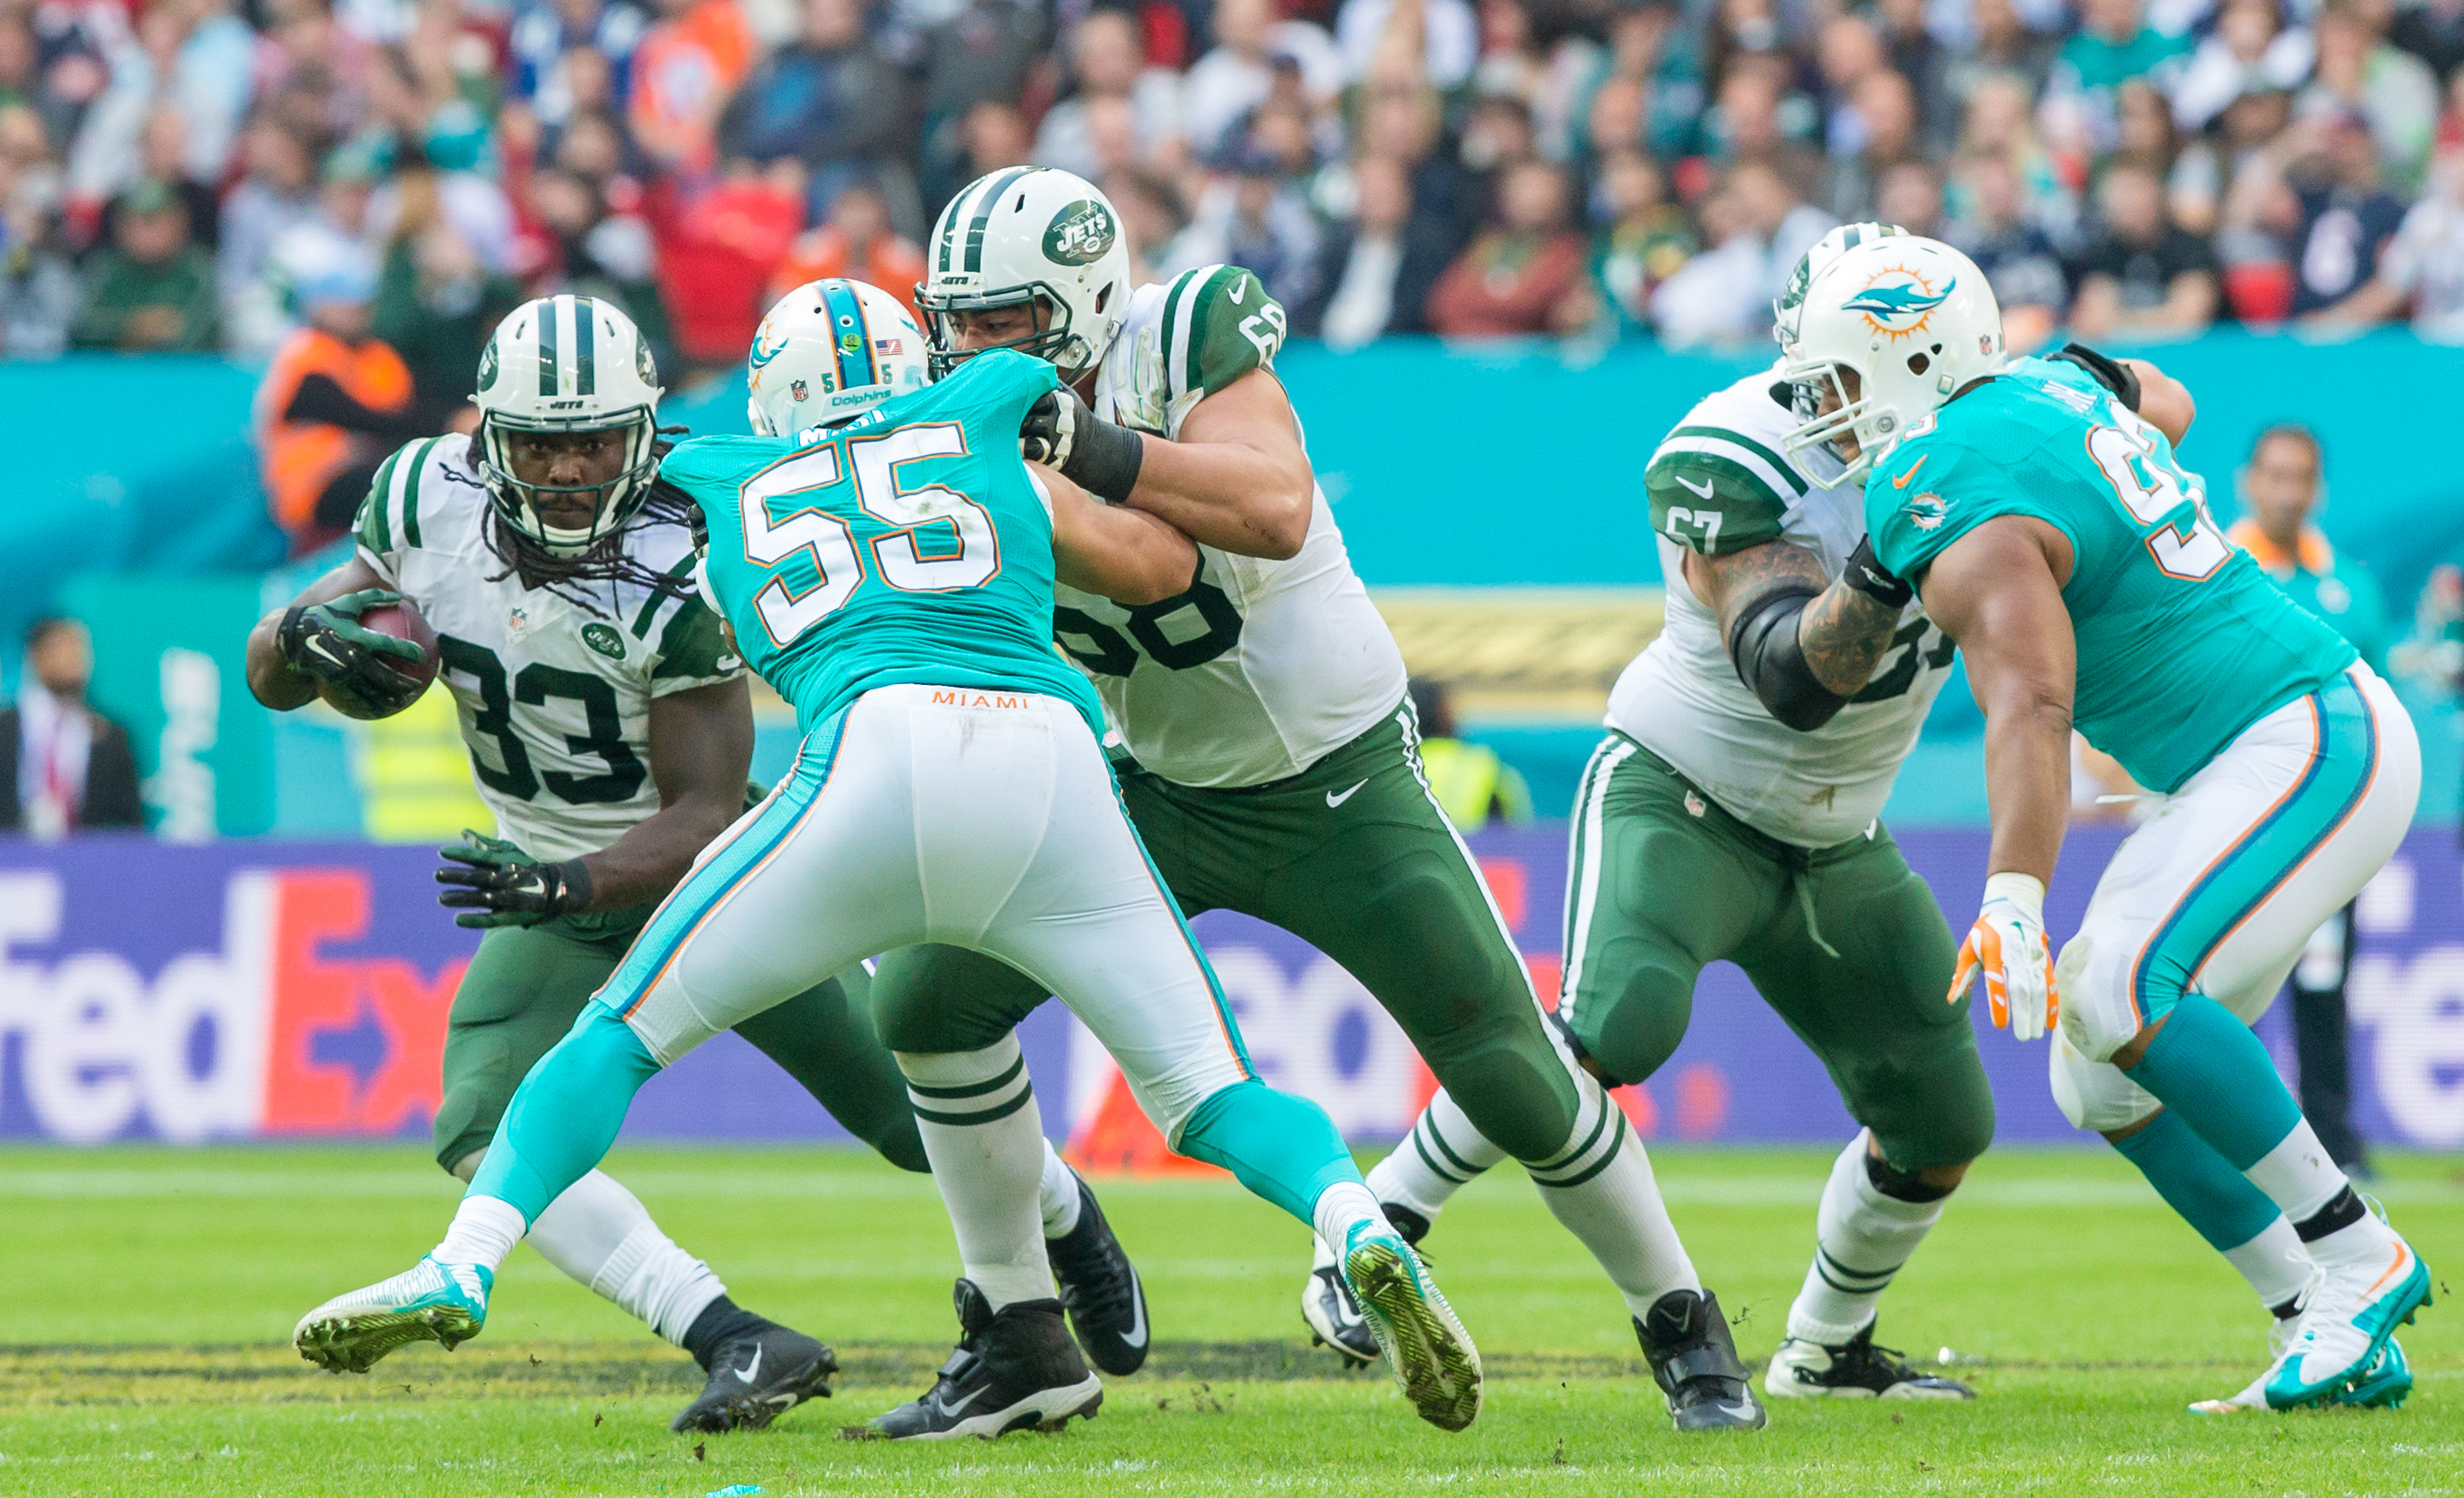 NFLDolphinsvJets04Oct15029-2